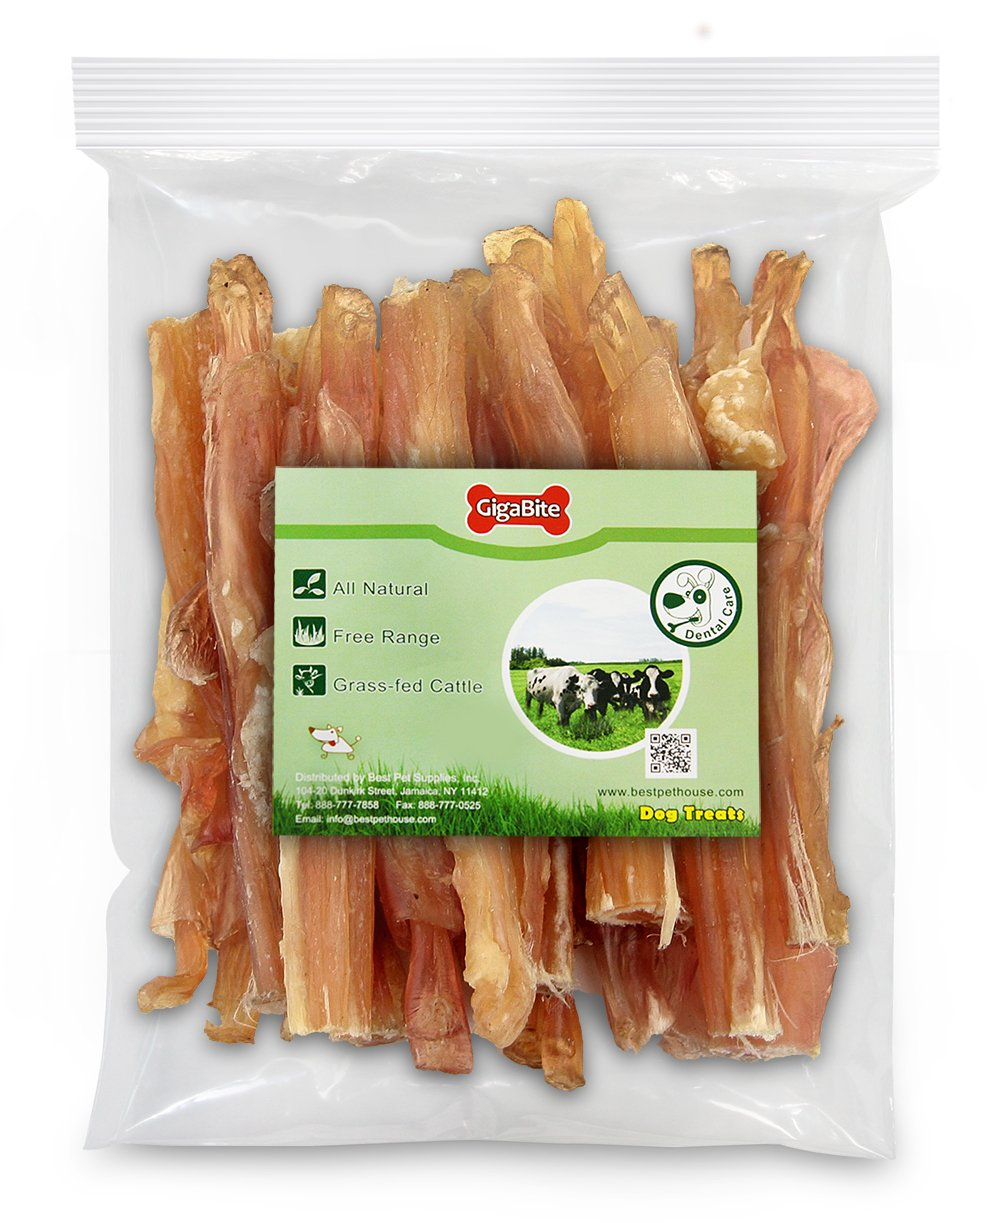 GigaBite 6 Inch Beef Tendon Sticks (15 Pack) – USDA & FDA Certified All Natural, Free Range Beef Tendon Dog Treat – By Best Pet Supplies by Best Pet Supplies, Inc. (Image #4)